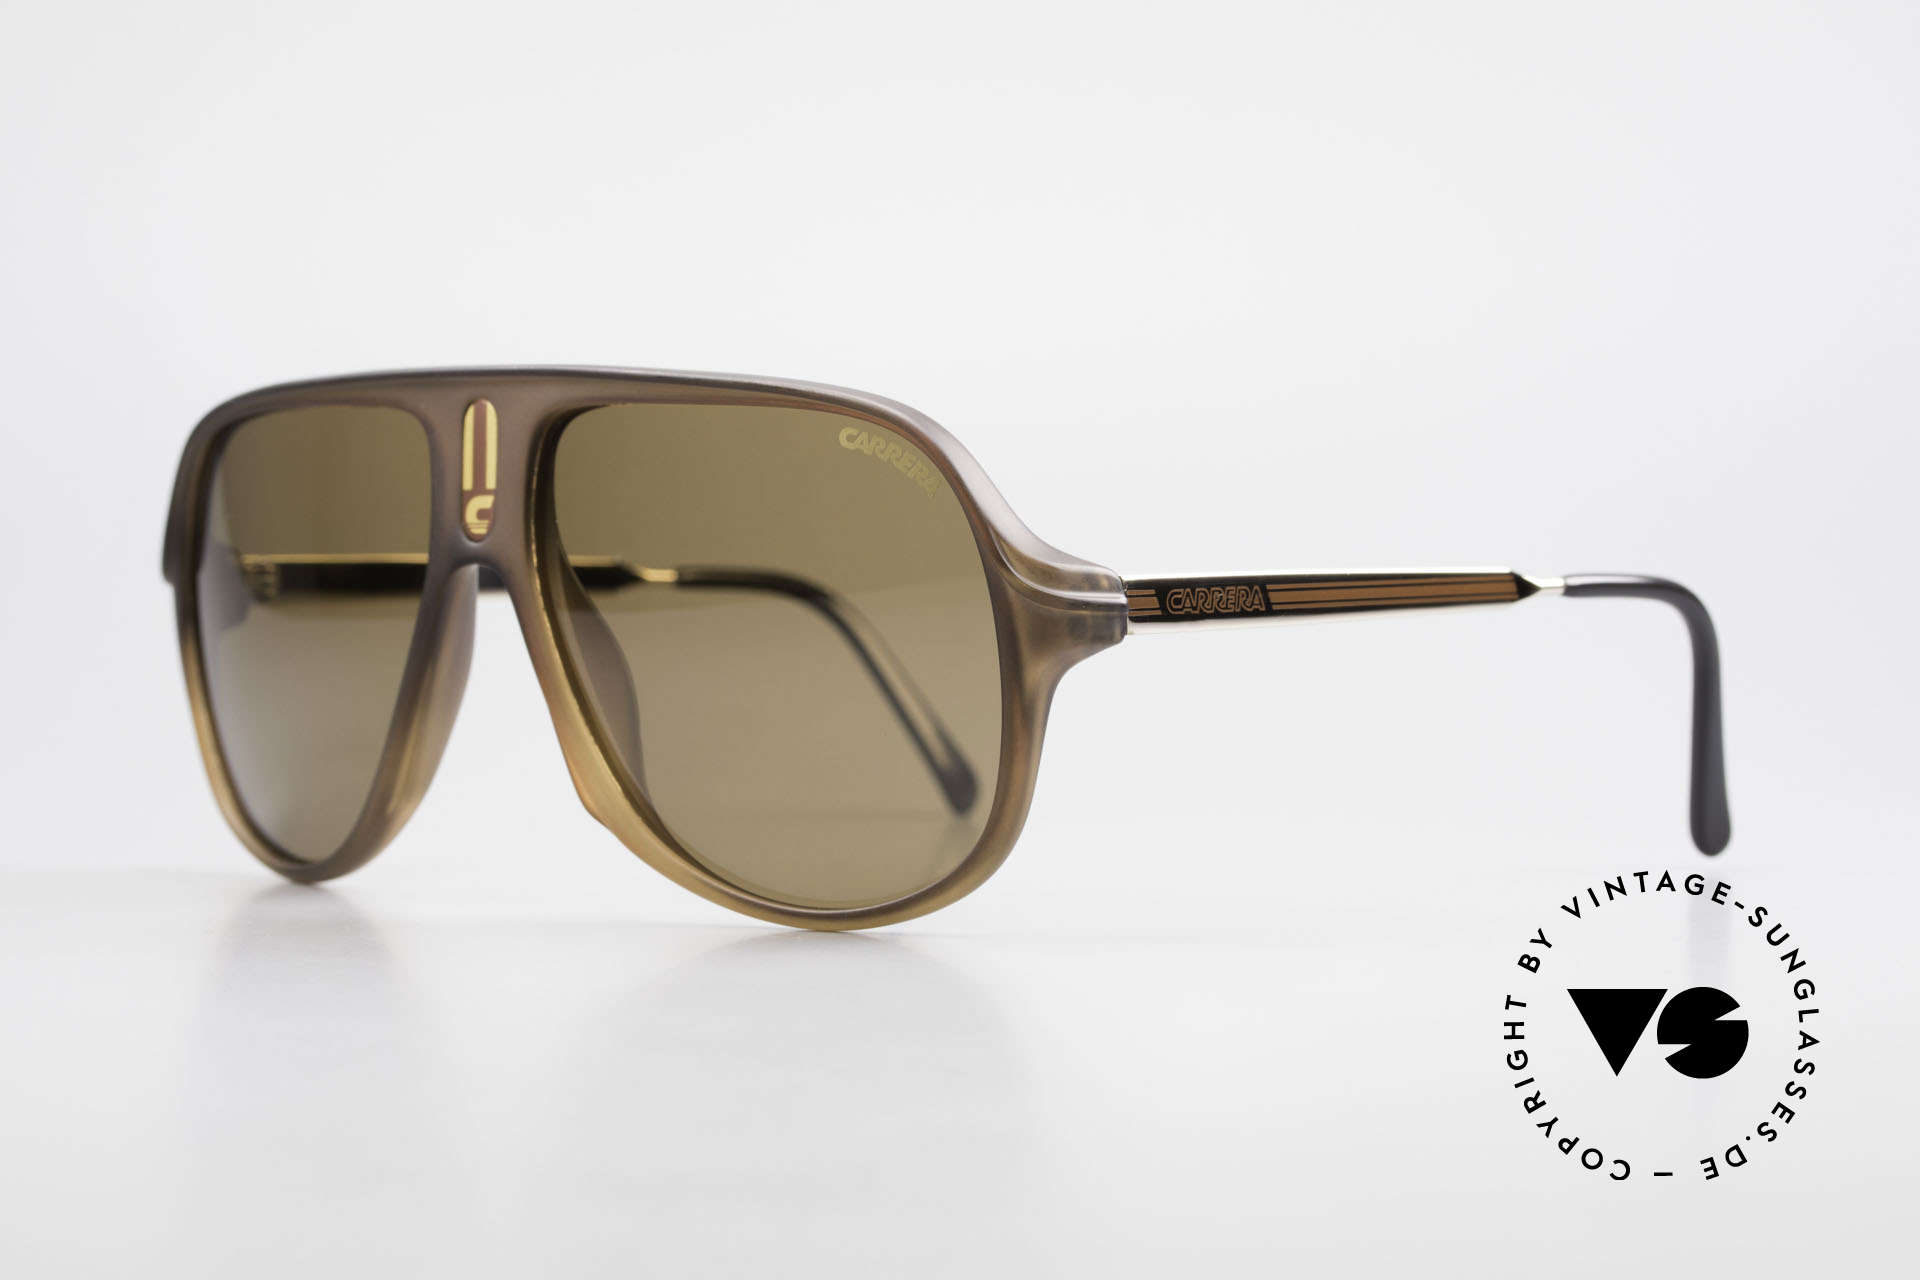 Carrera 5547 Polarized 80's Sunglasses, men's shades (145mm frame width), XL vintage shades, Made for Men